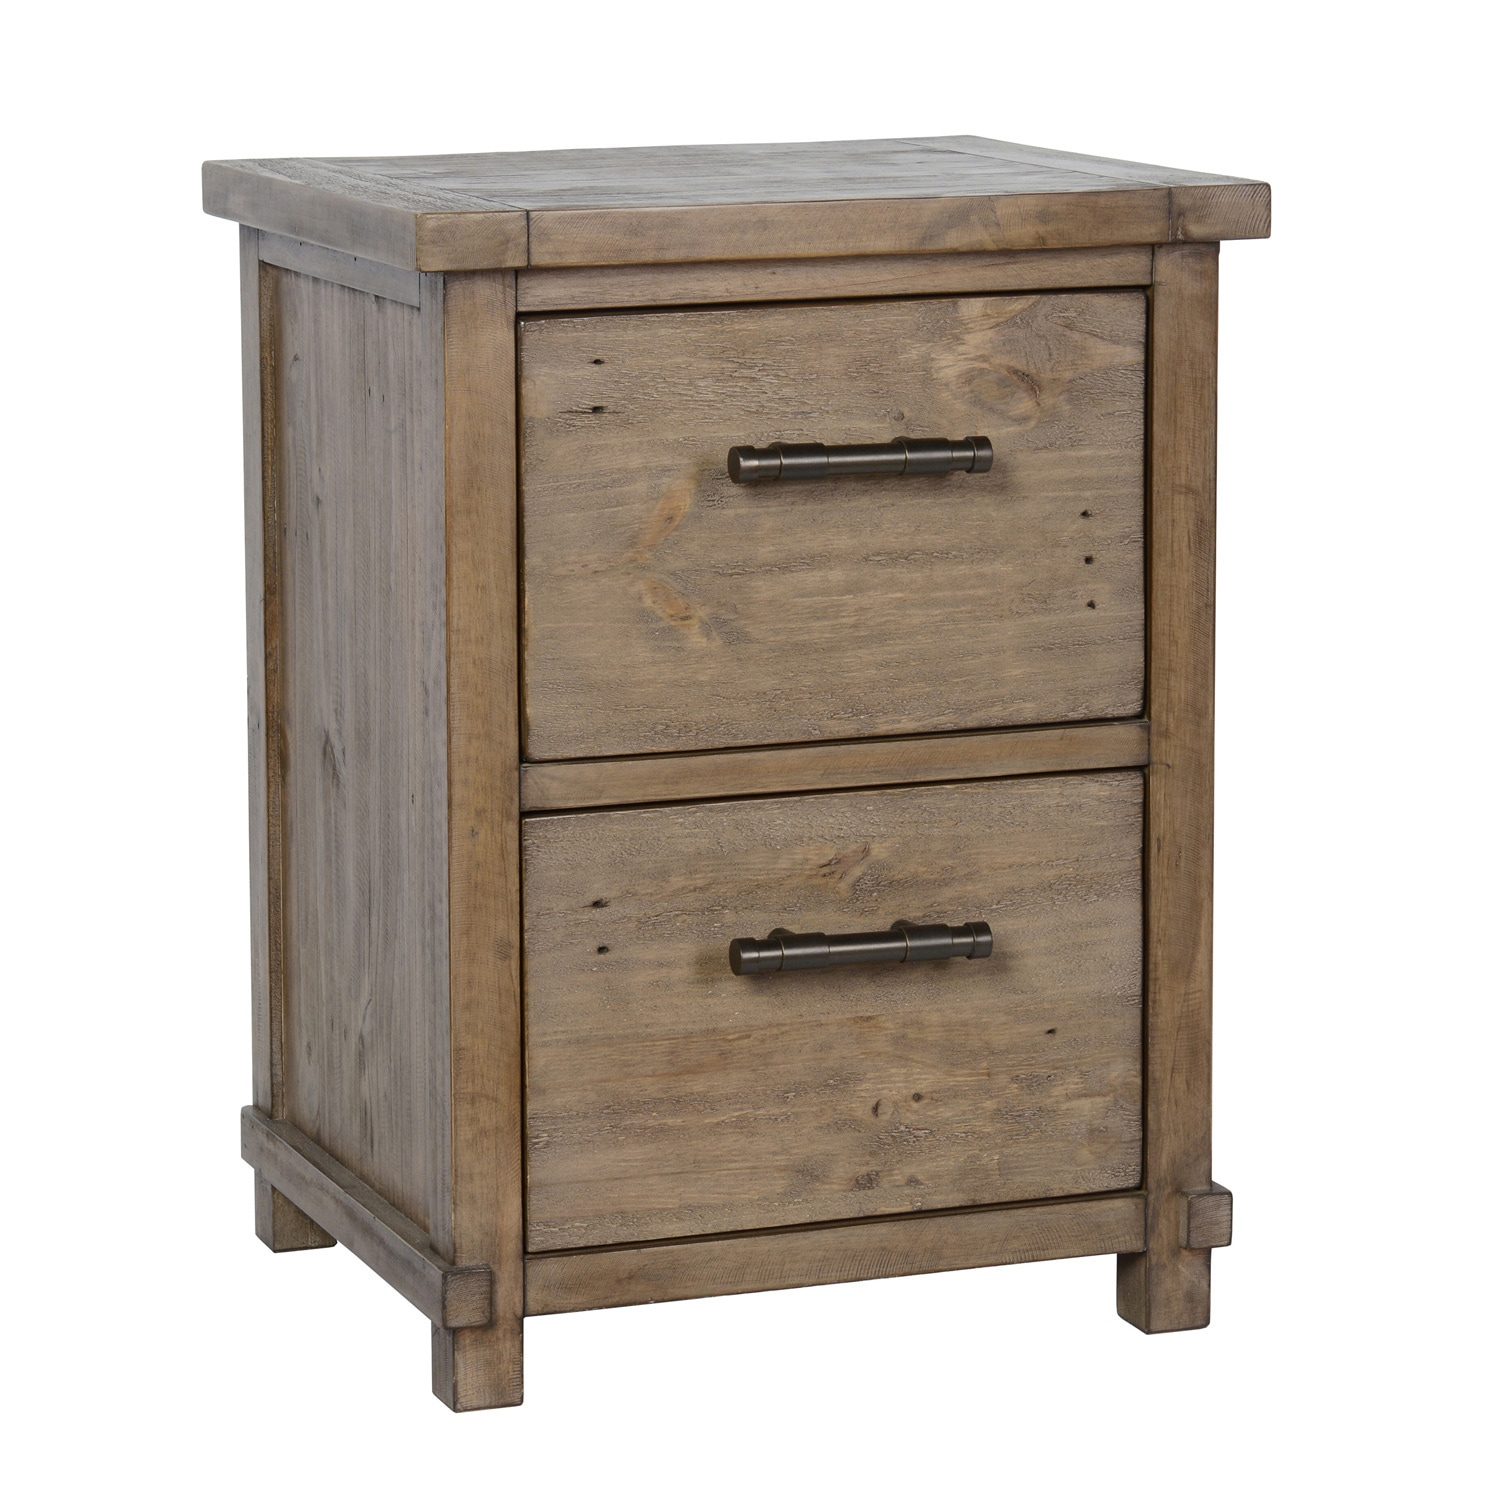 wid hei two p spin dorel prod bank home adler filing drawer qlt core cabinet file furnishings